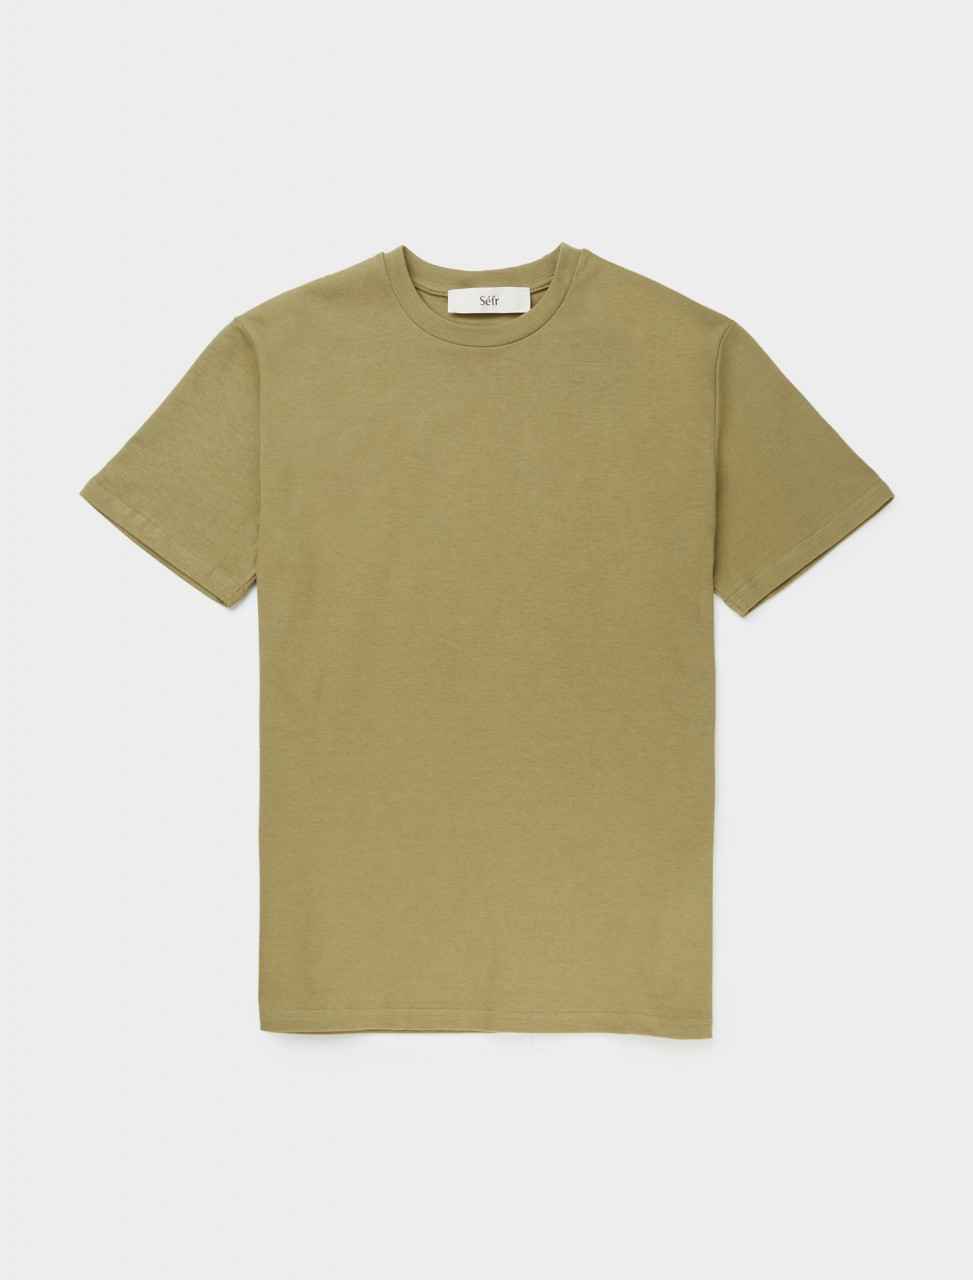 Front view of Séfr Clin Tee in Herb Green